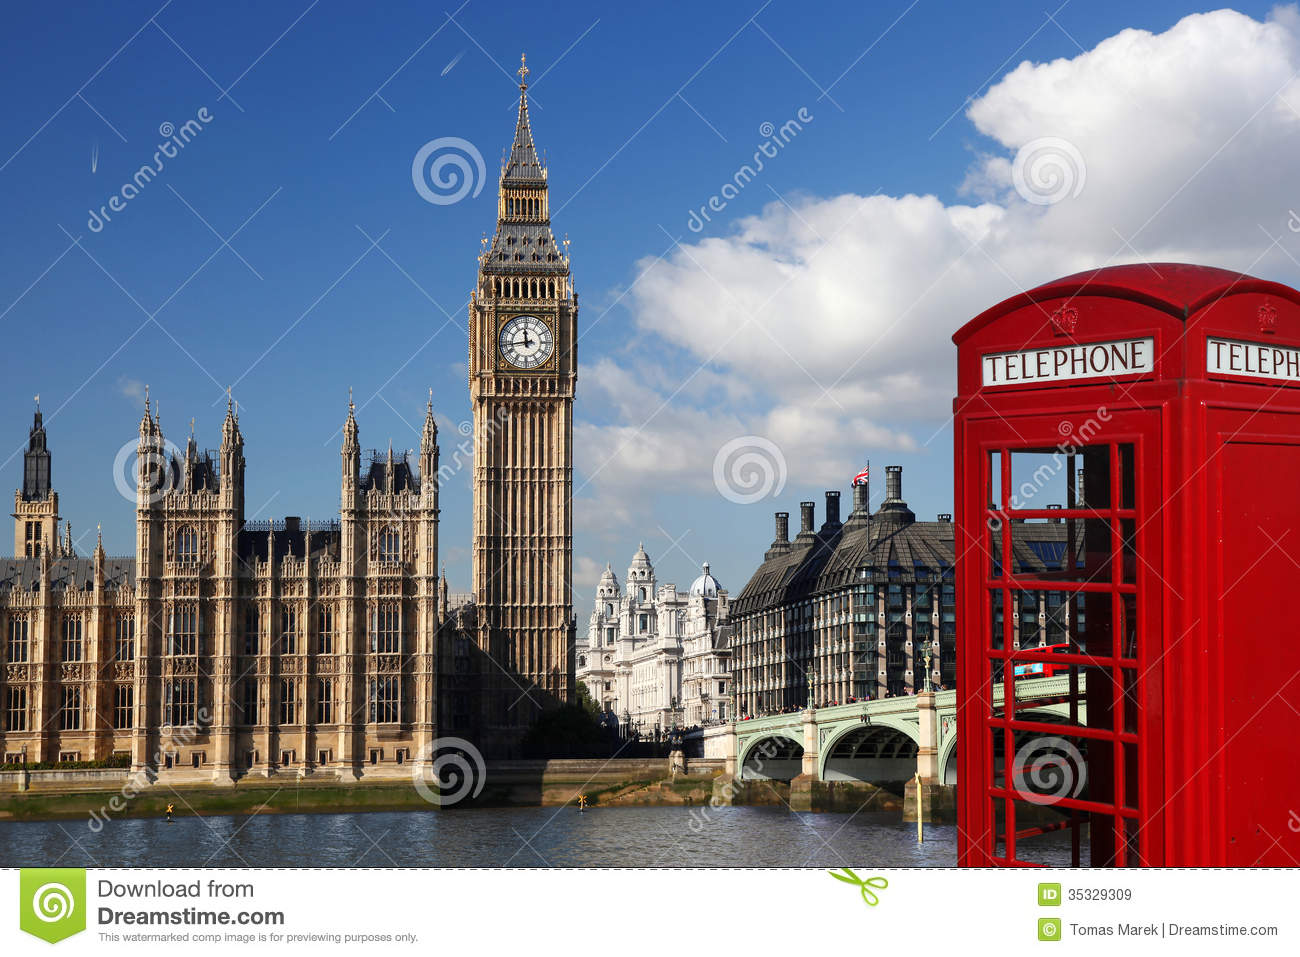 Big Ben With Red Phone Booth In London, England Royalty Free Stock Images - Image: 35329309